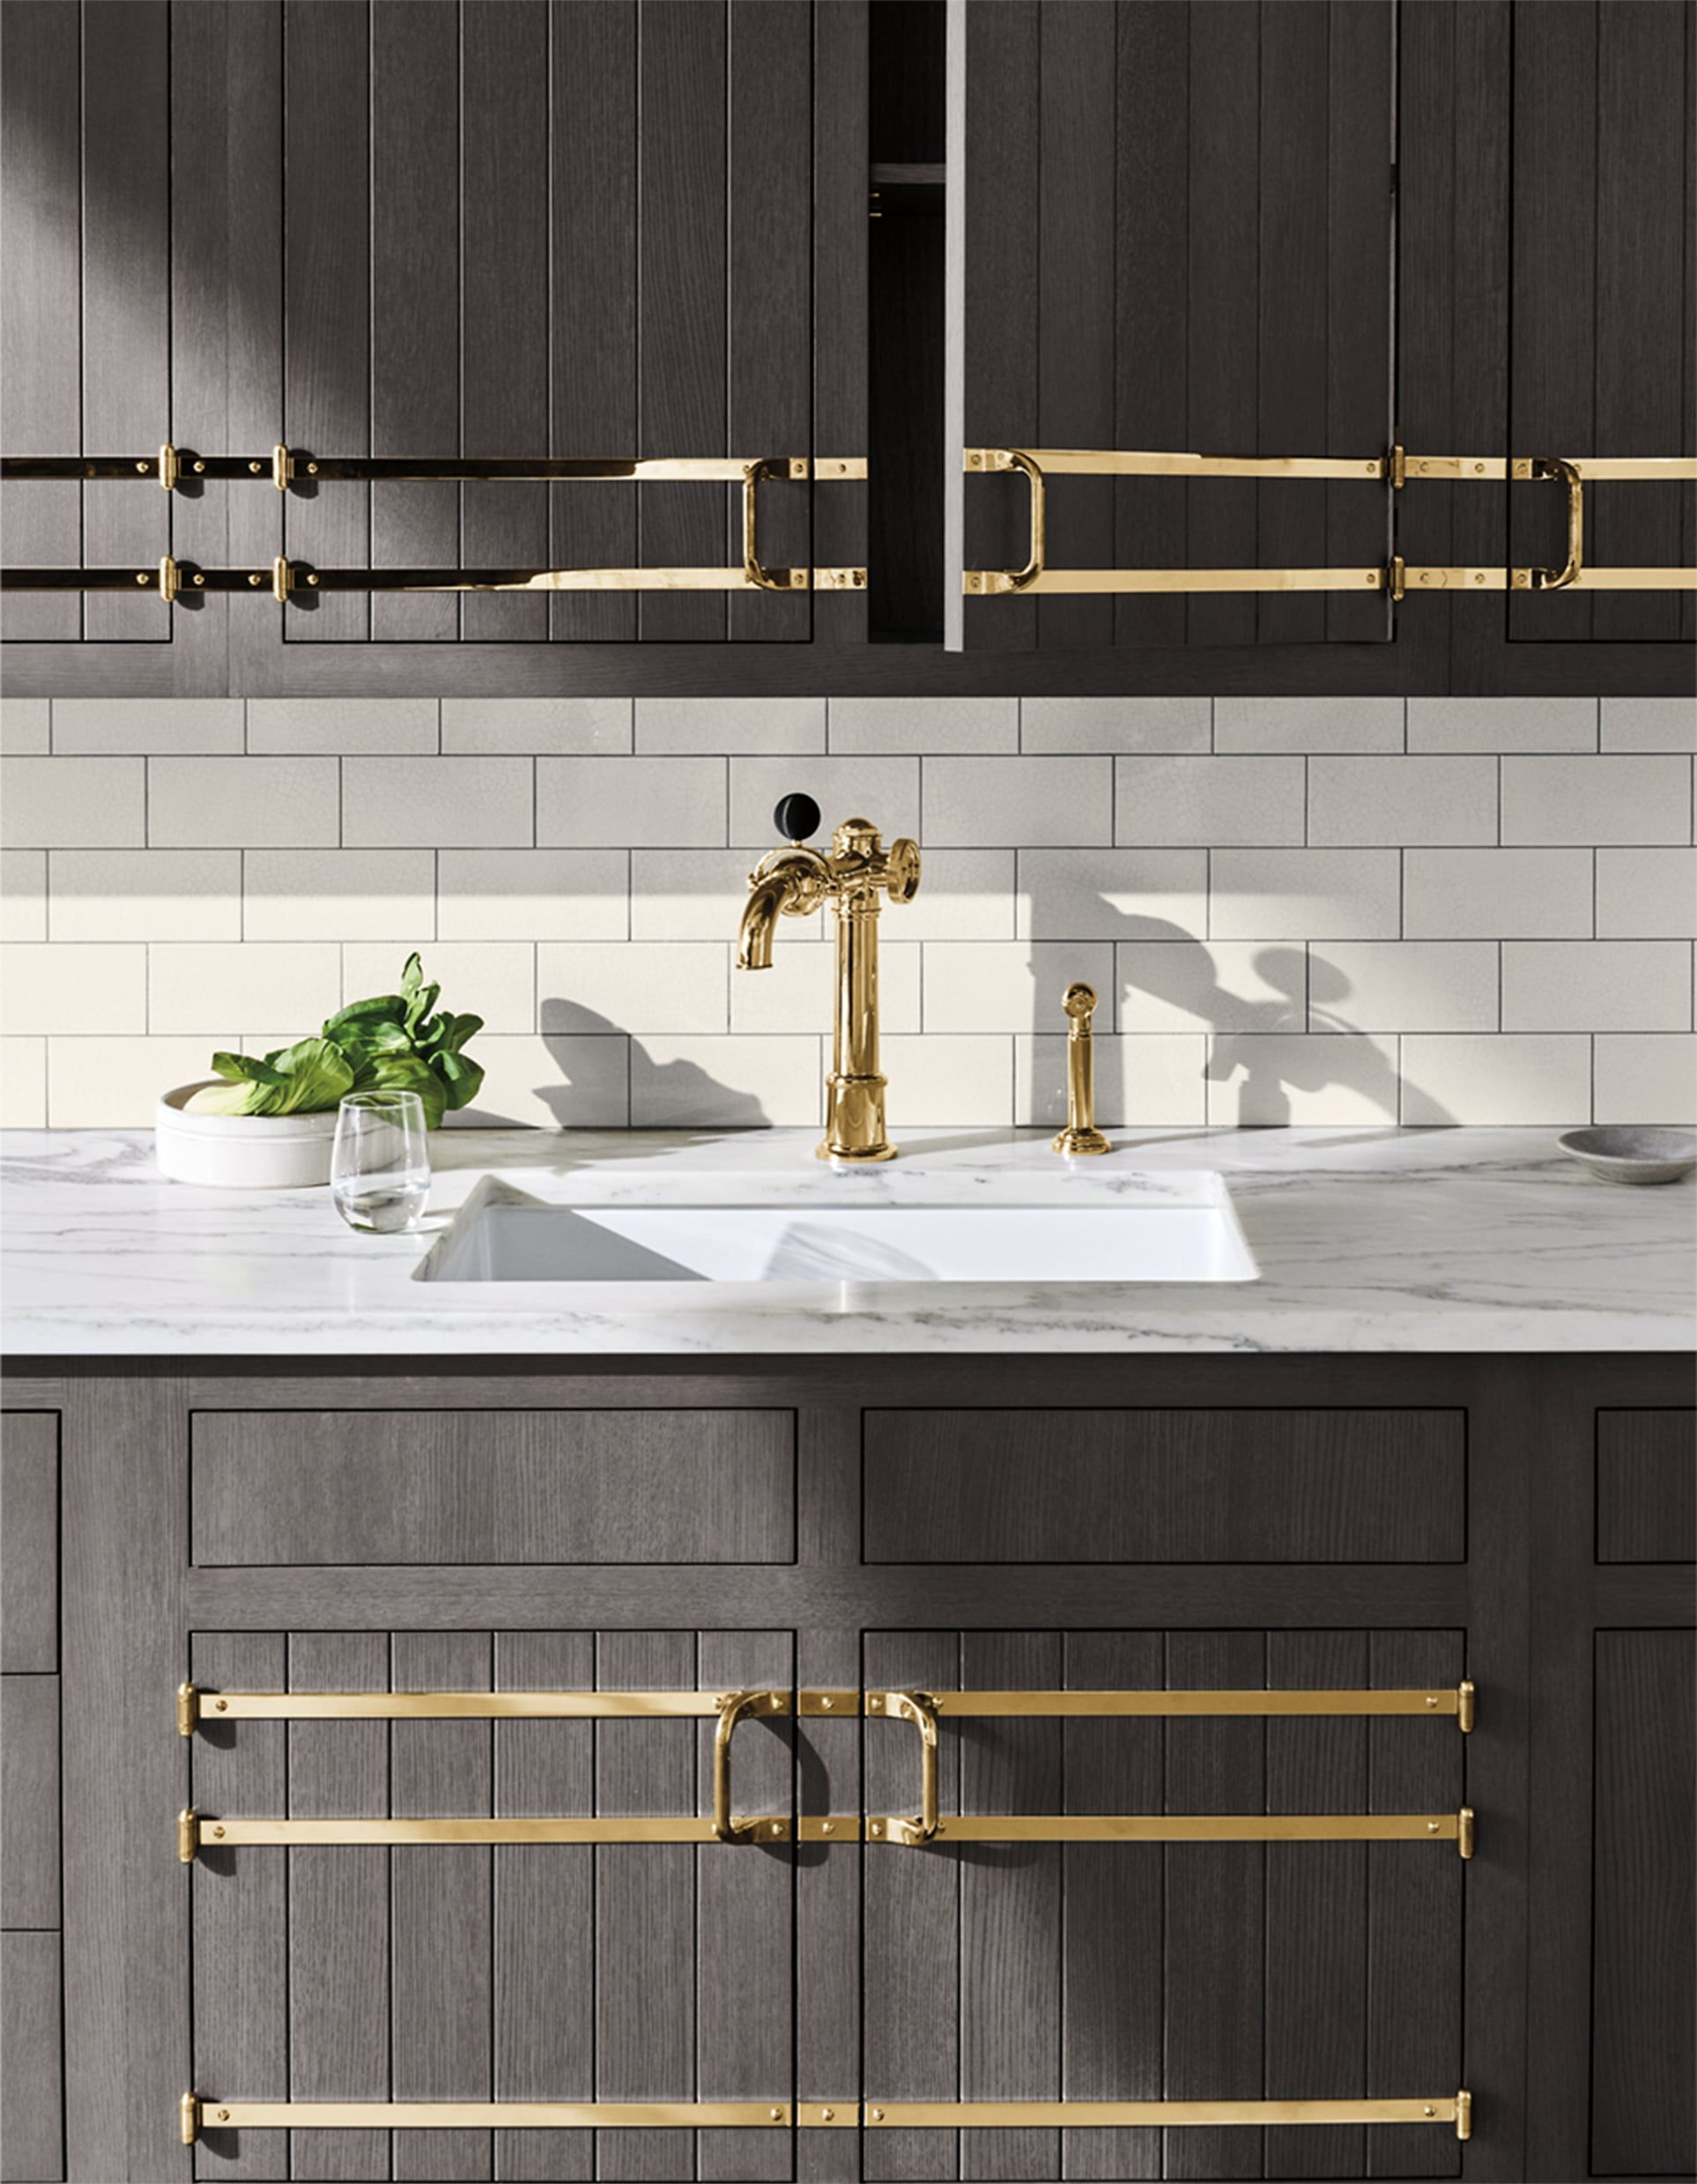 Cabinetry Collections Waterworks Waterworks In 2020 Kitchen Faucet Waterworks Bathroom Cabinetry